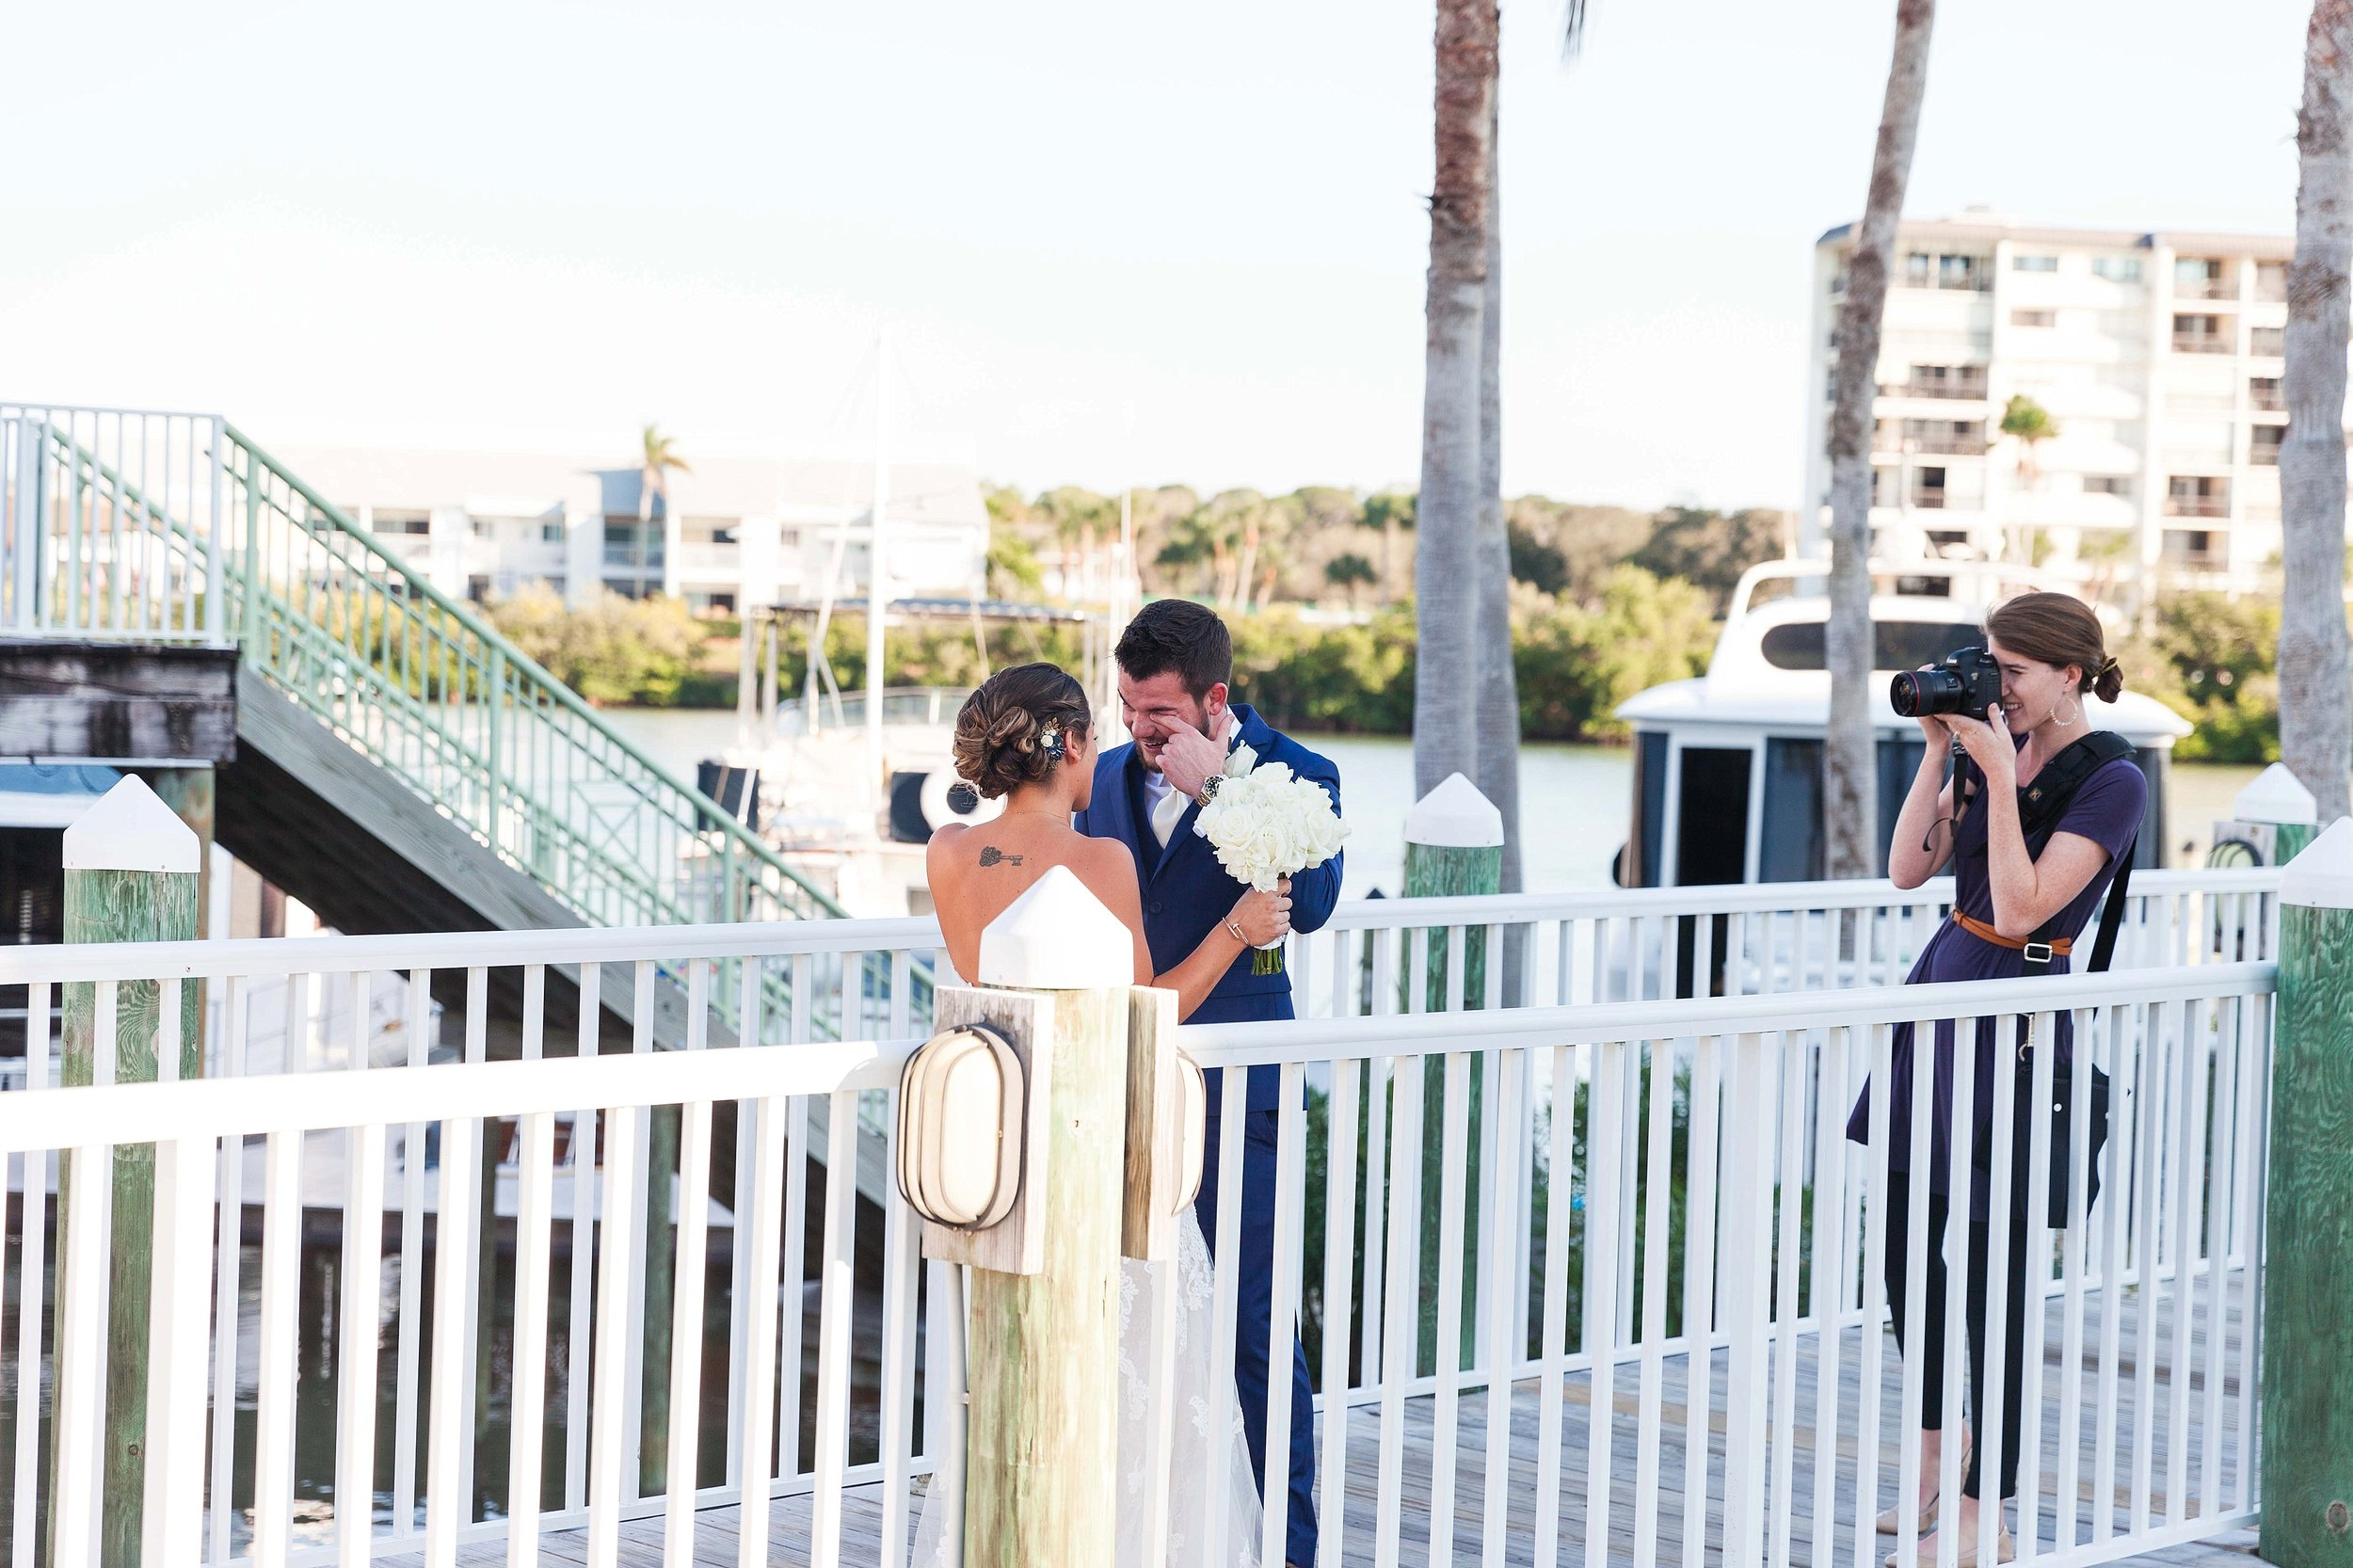 The sweetest first look from Jordan and Drew's day!